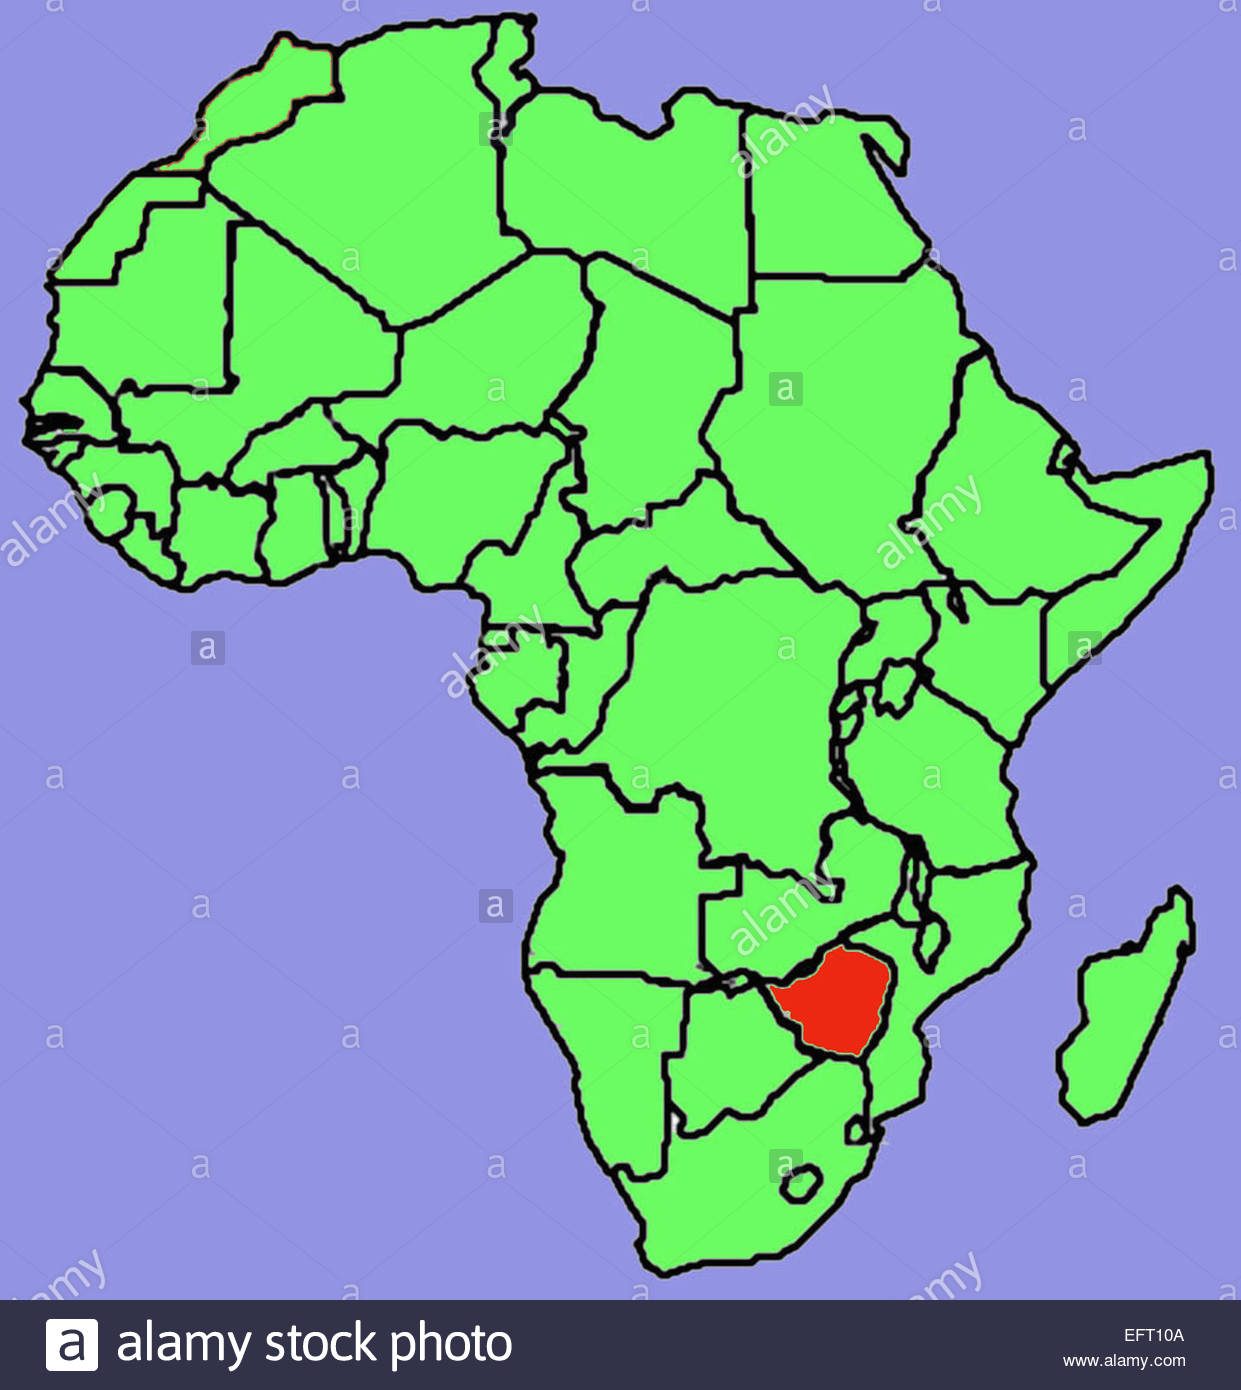 Map Of Africa Zimbabwe.Map Republic Of Zimbabwe Southern Africa Zwe African Continent Stock